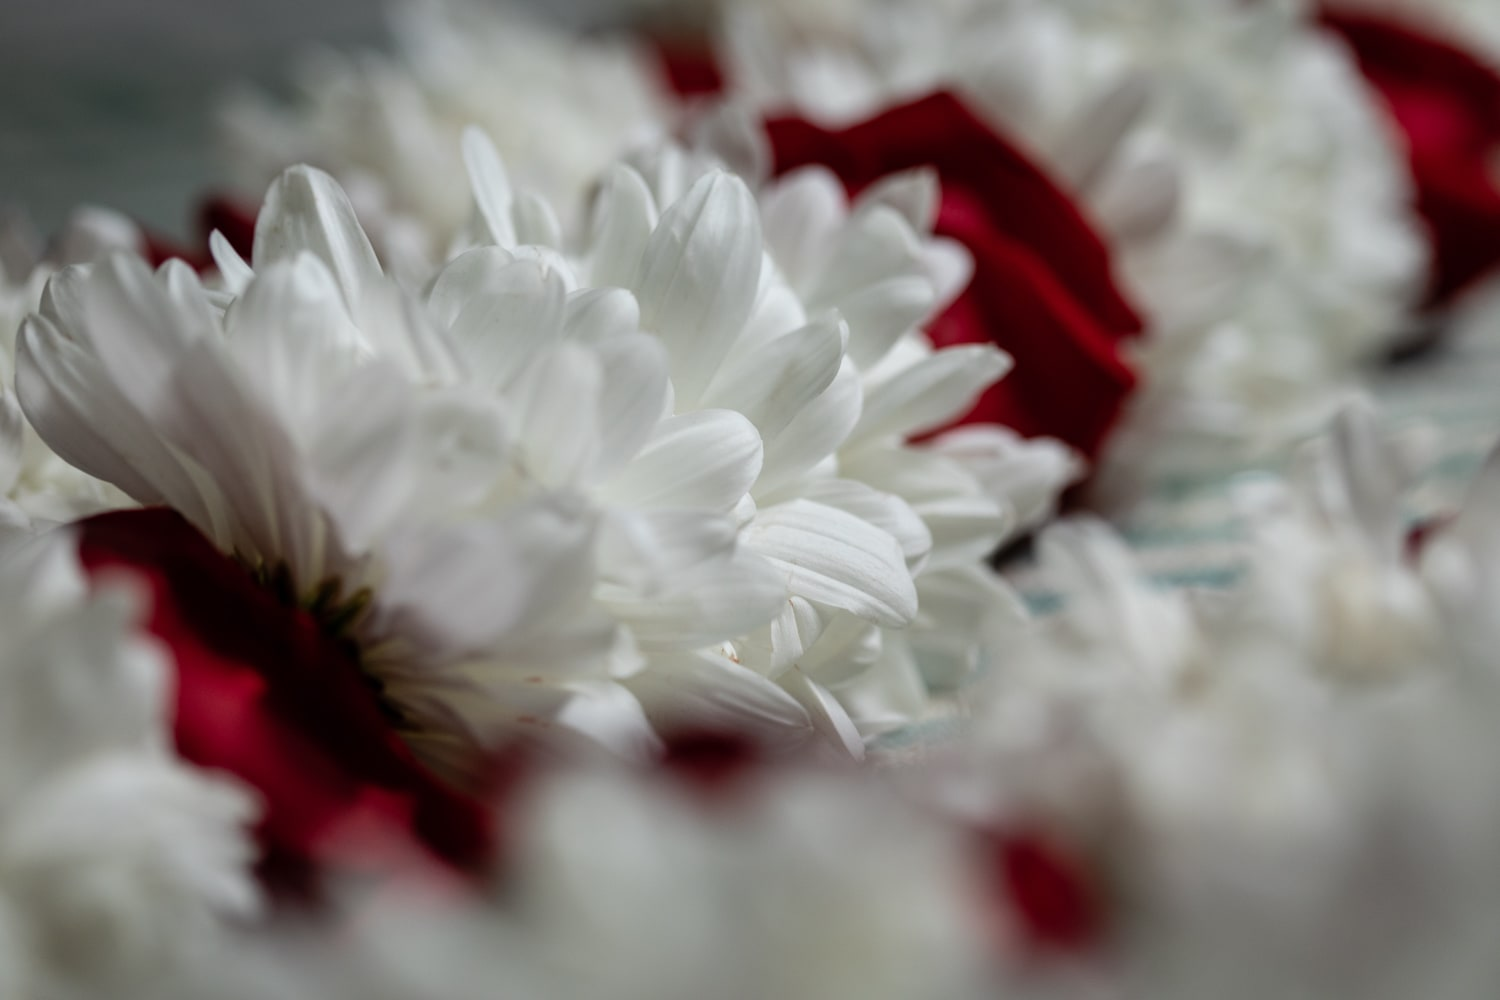 Photo of red and white flowers in Indian bridal garland.